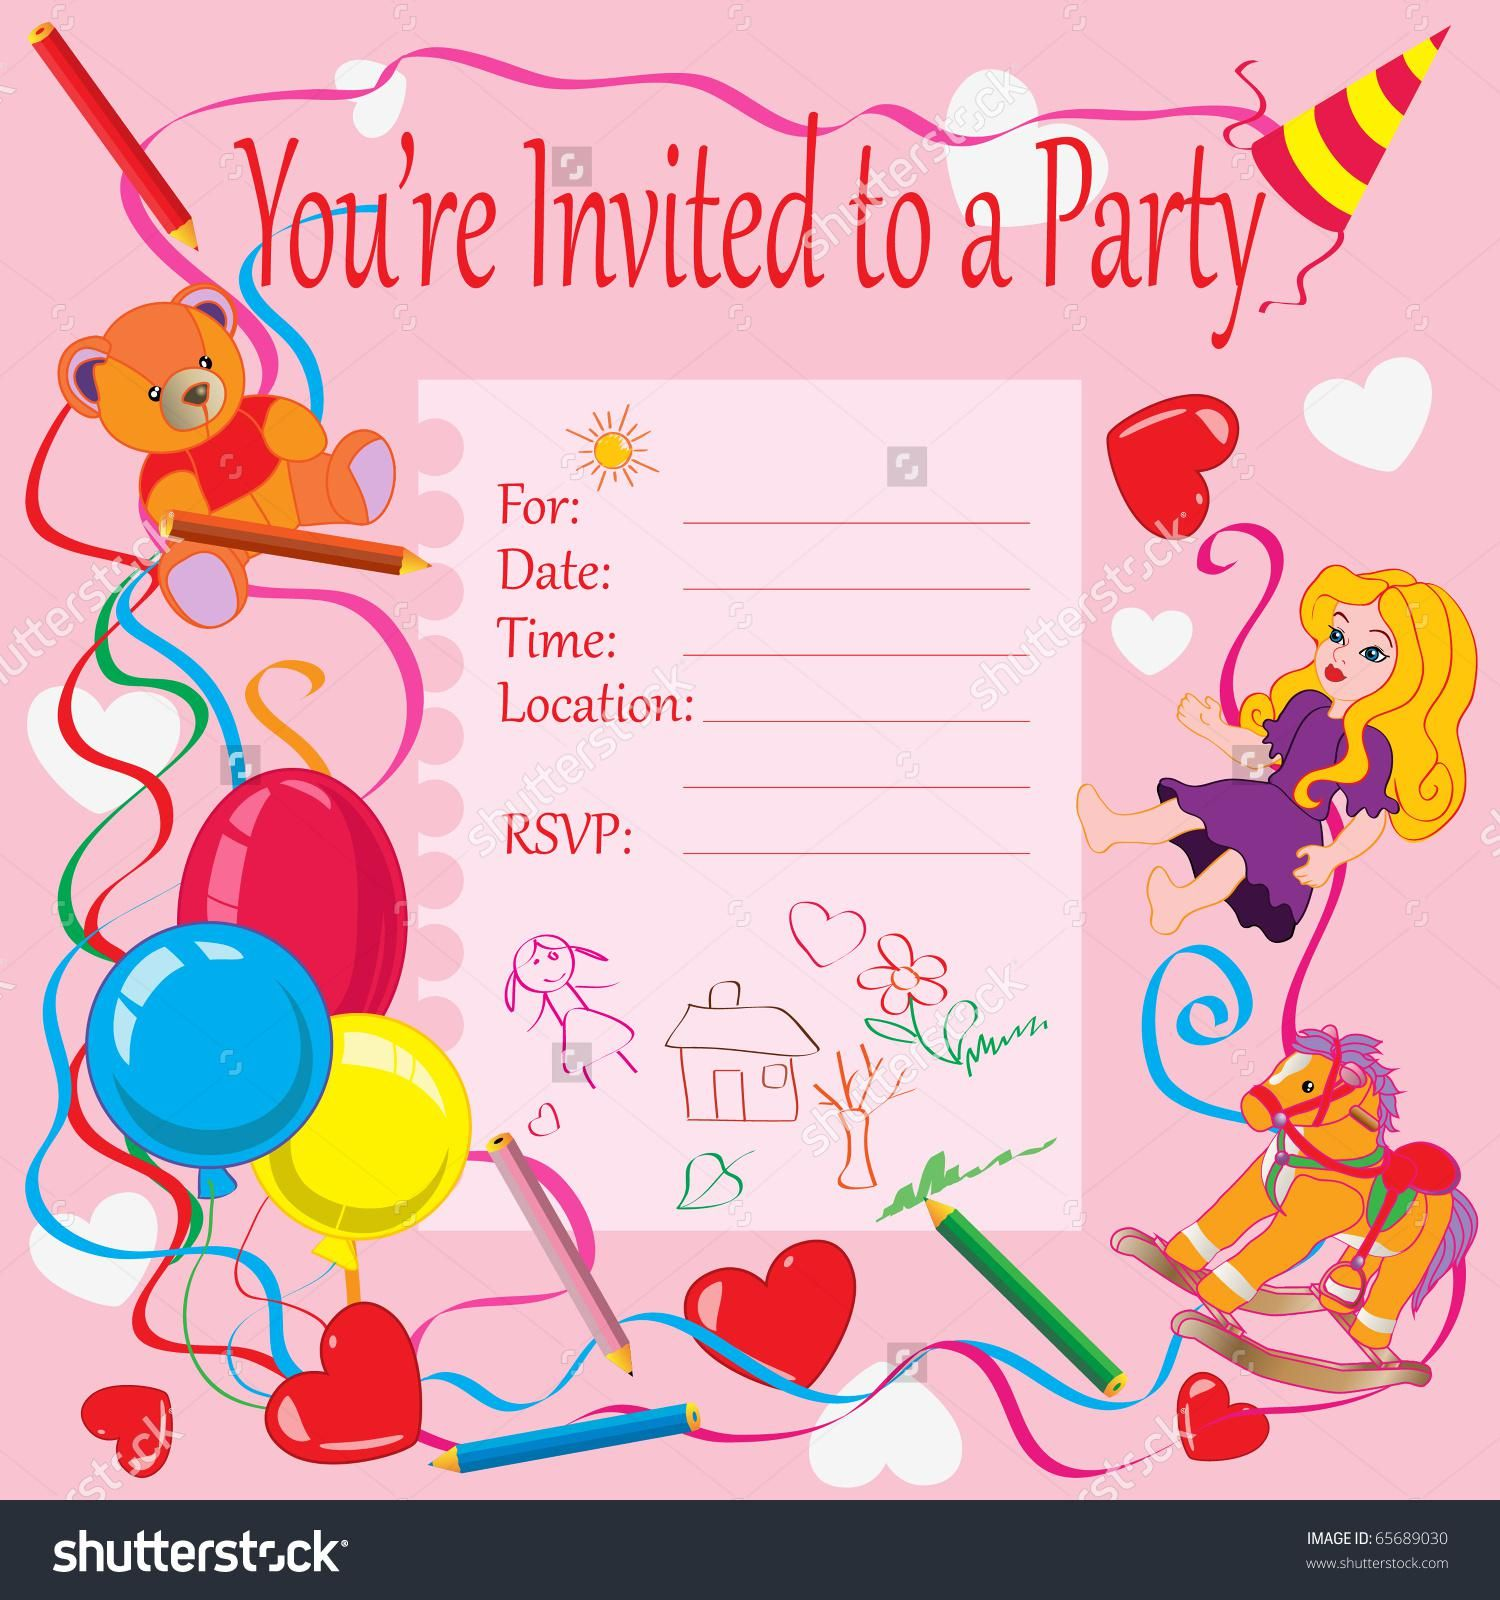 Printable Invitation Card for Birthday Party for Kids in